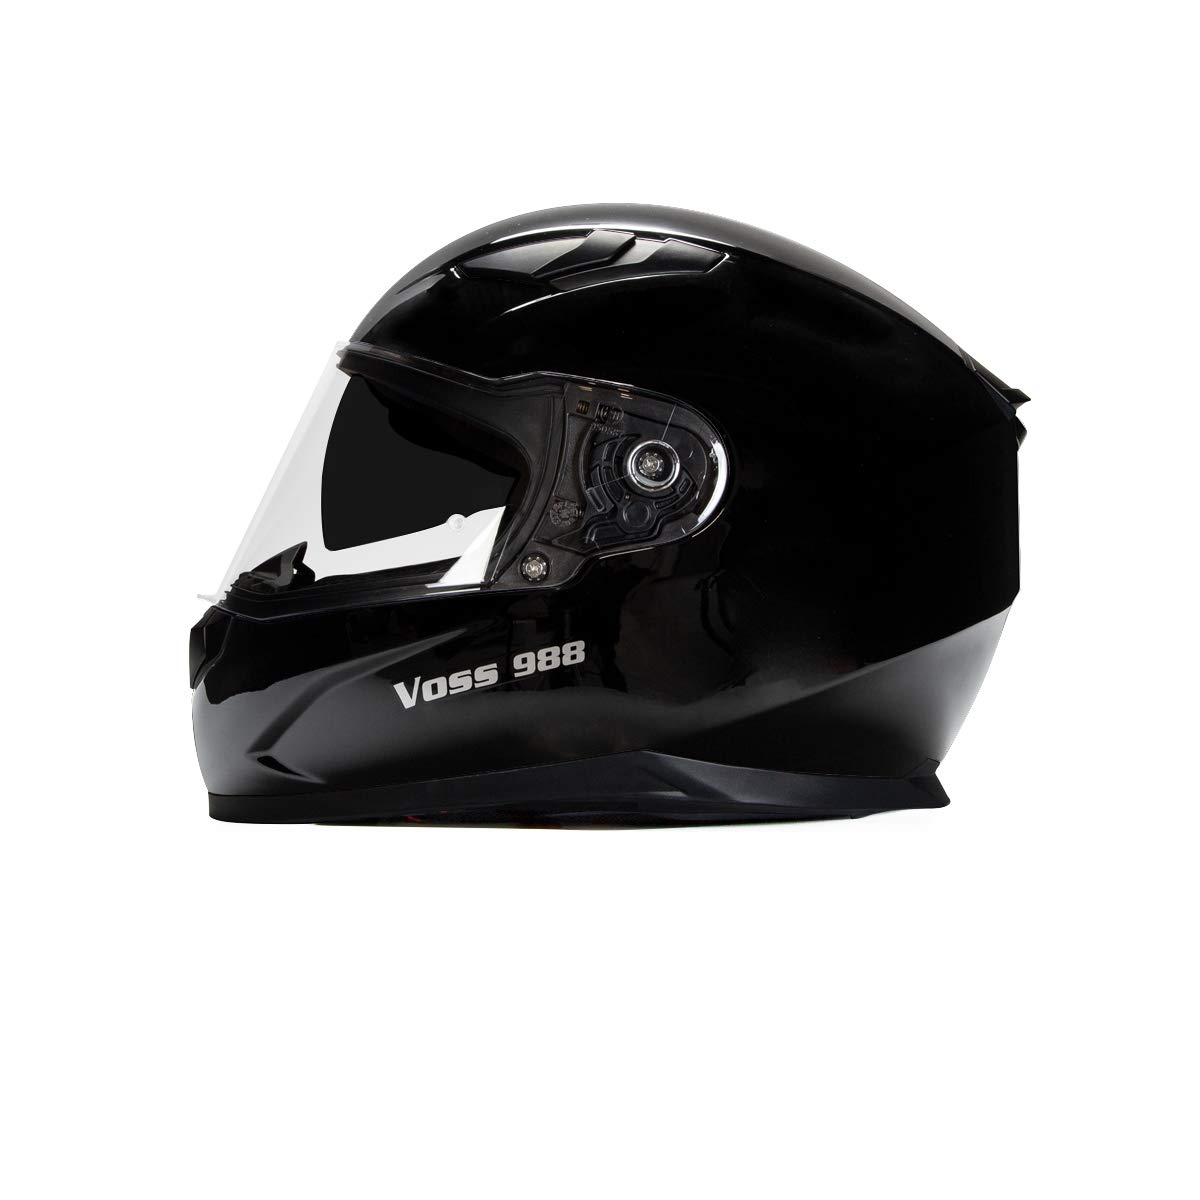 Voss 988 Moto-1 Street Full Face Helmet with Drop Down Internal Sun Lens - L - Solid Gloss Black